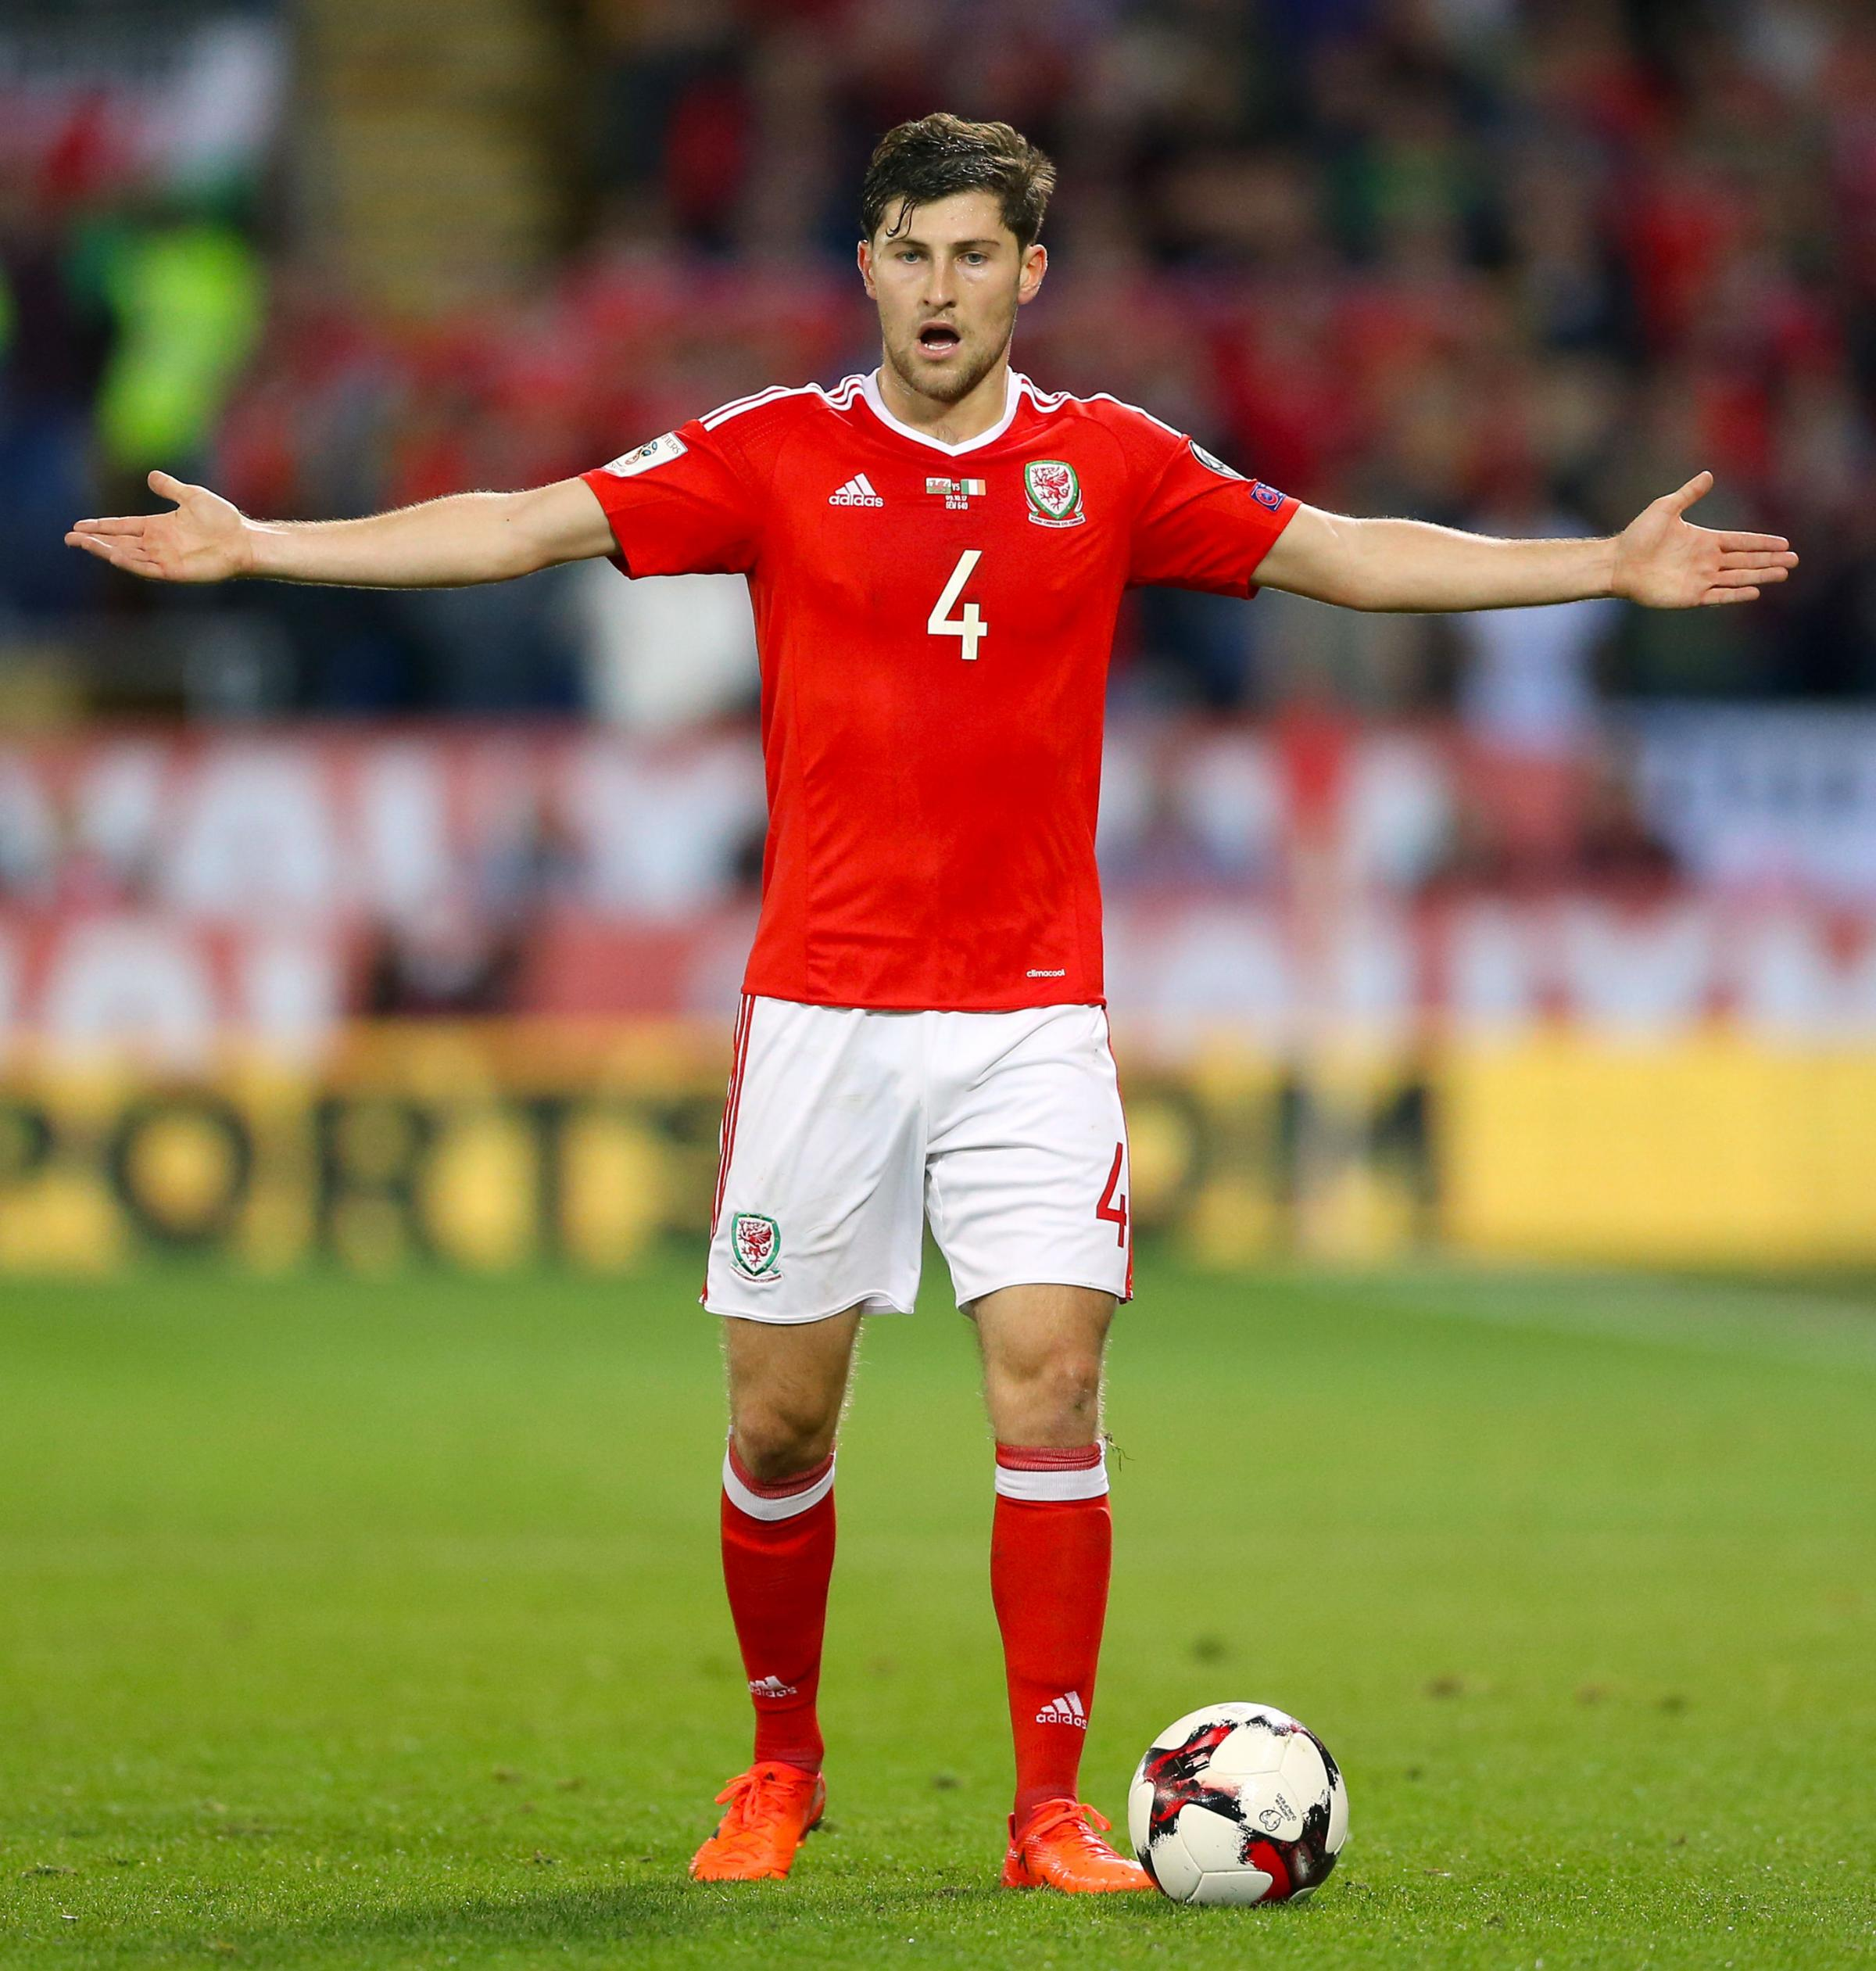 LOOKING FORWARD: Wales defender Ben Davies